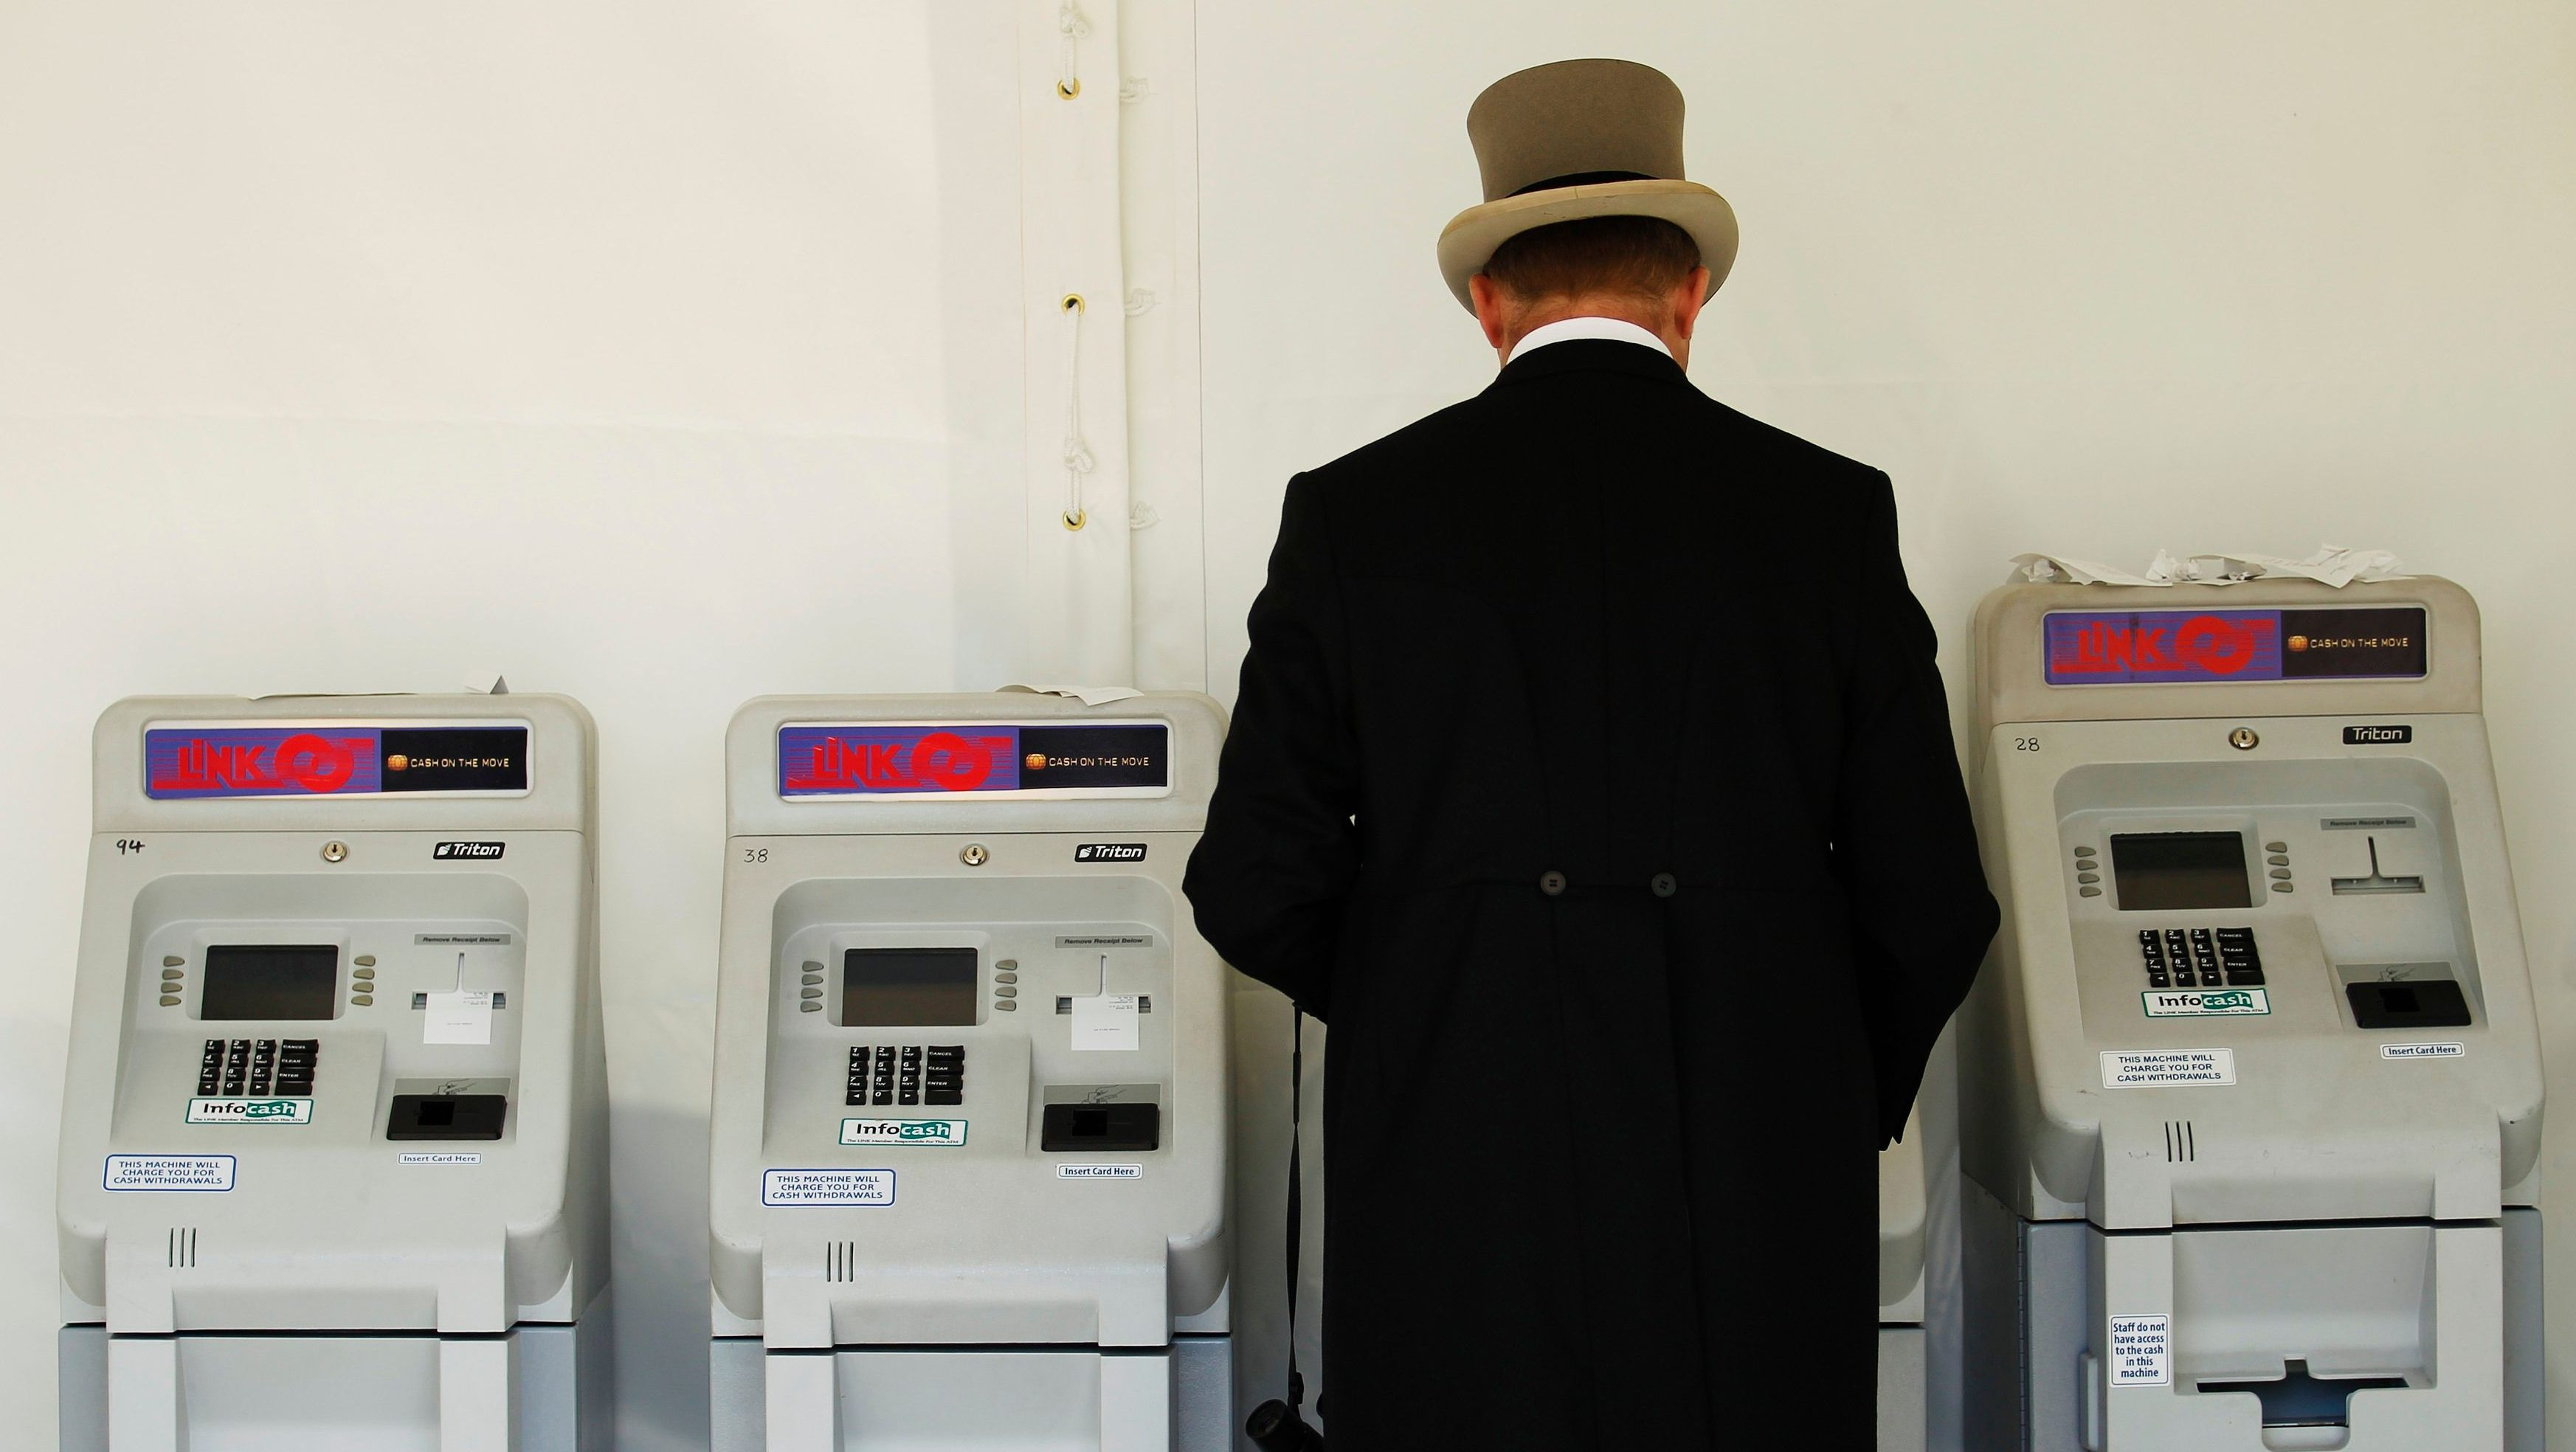 A racegoer uses a cash machine the second day of racing at Royal Ascot in southern England